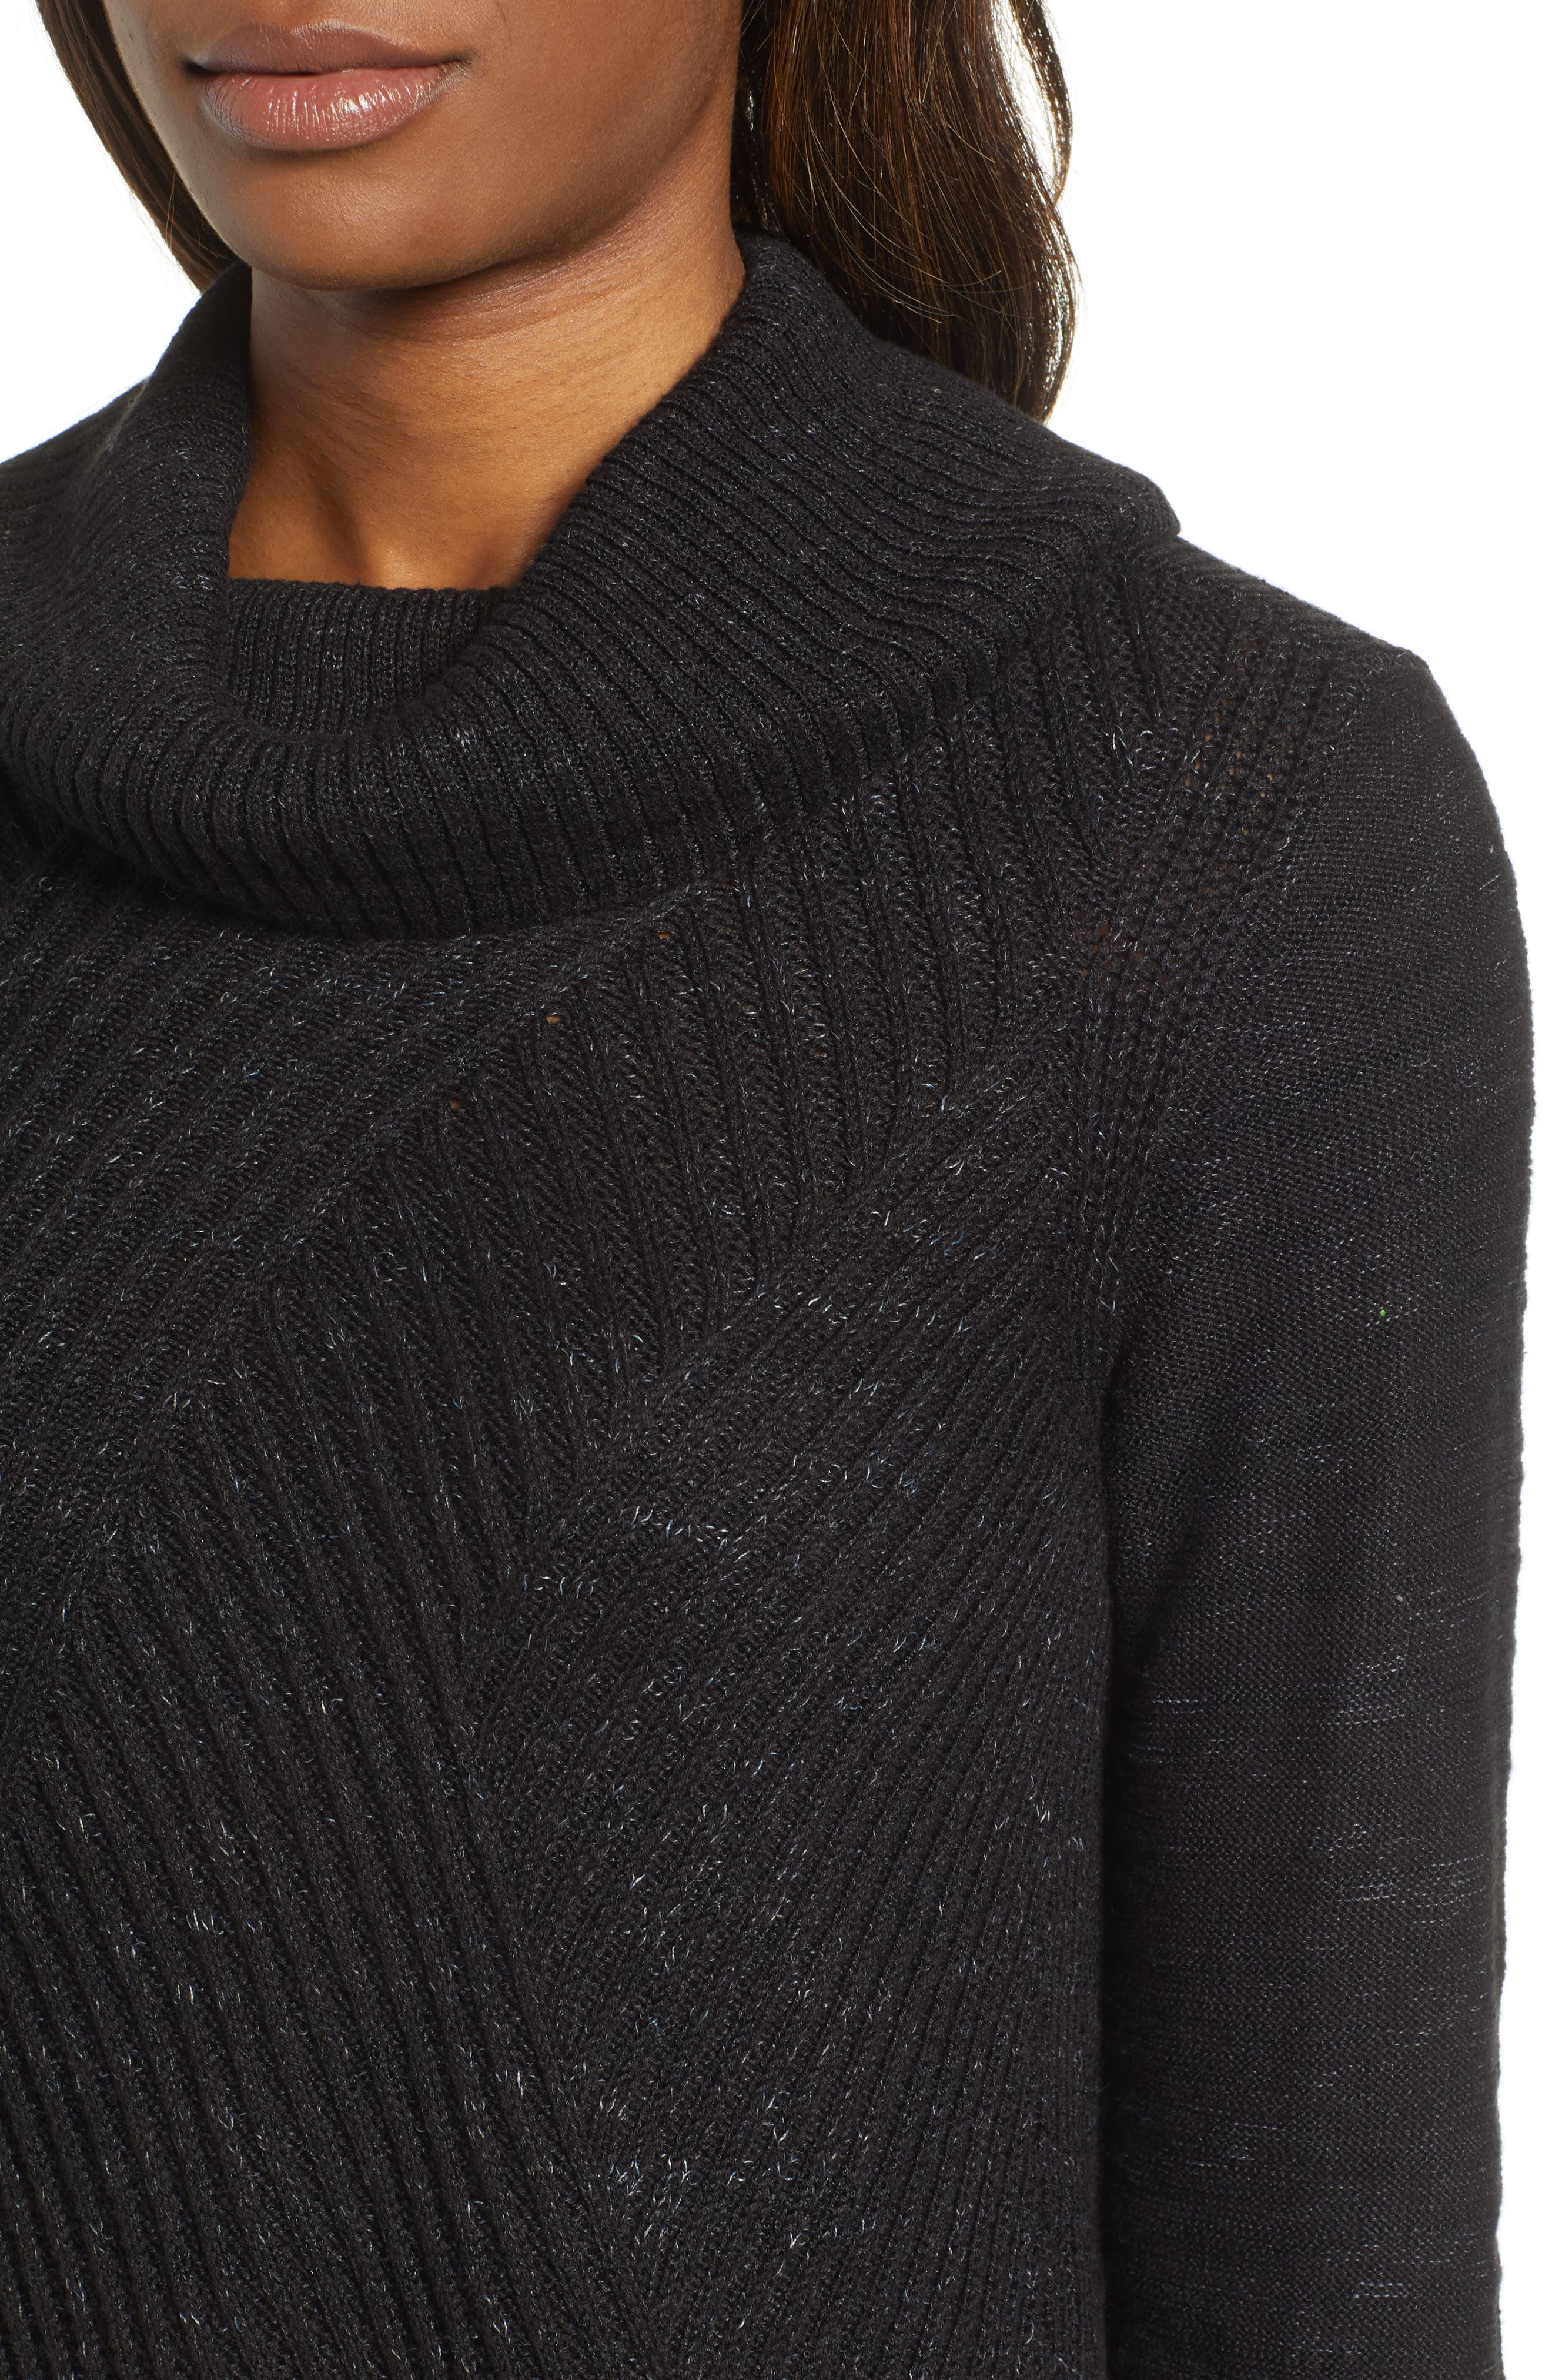 North Star Sweater,                             Alternate thumbnail 4, color,                             004